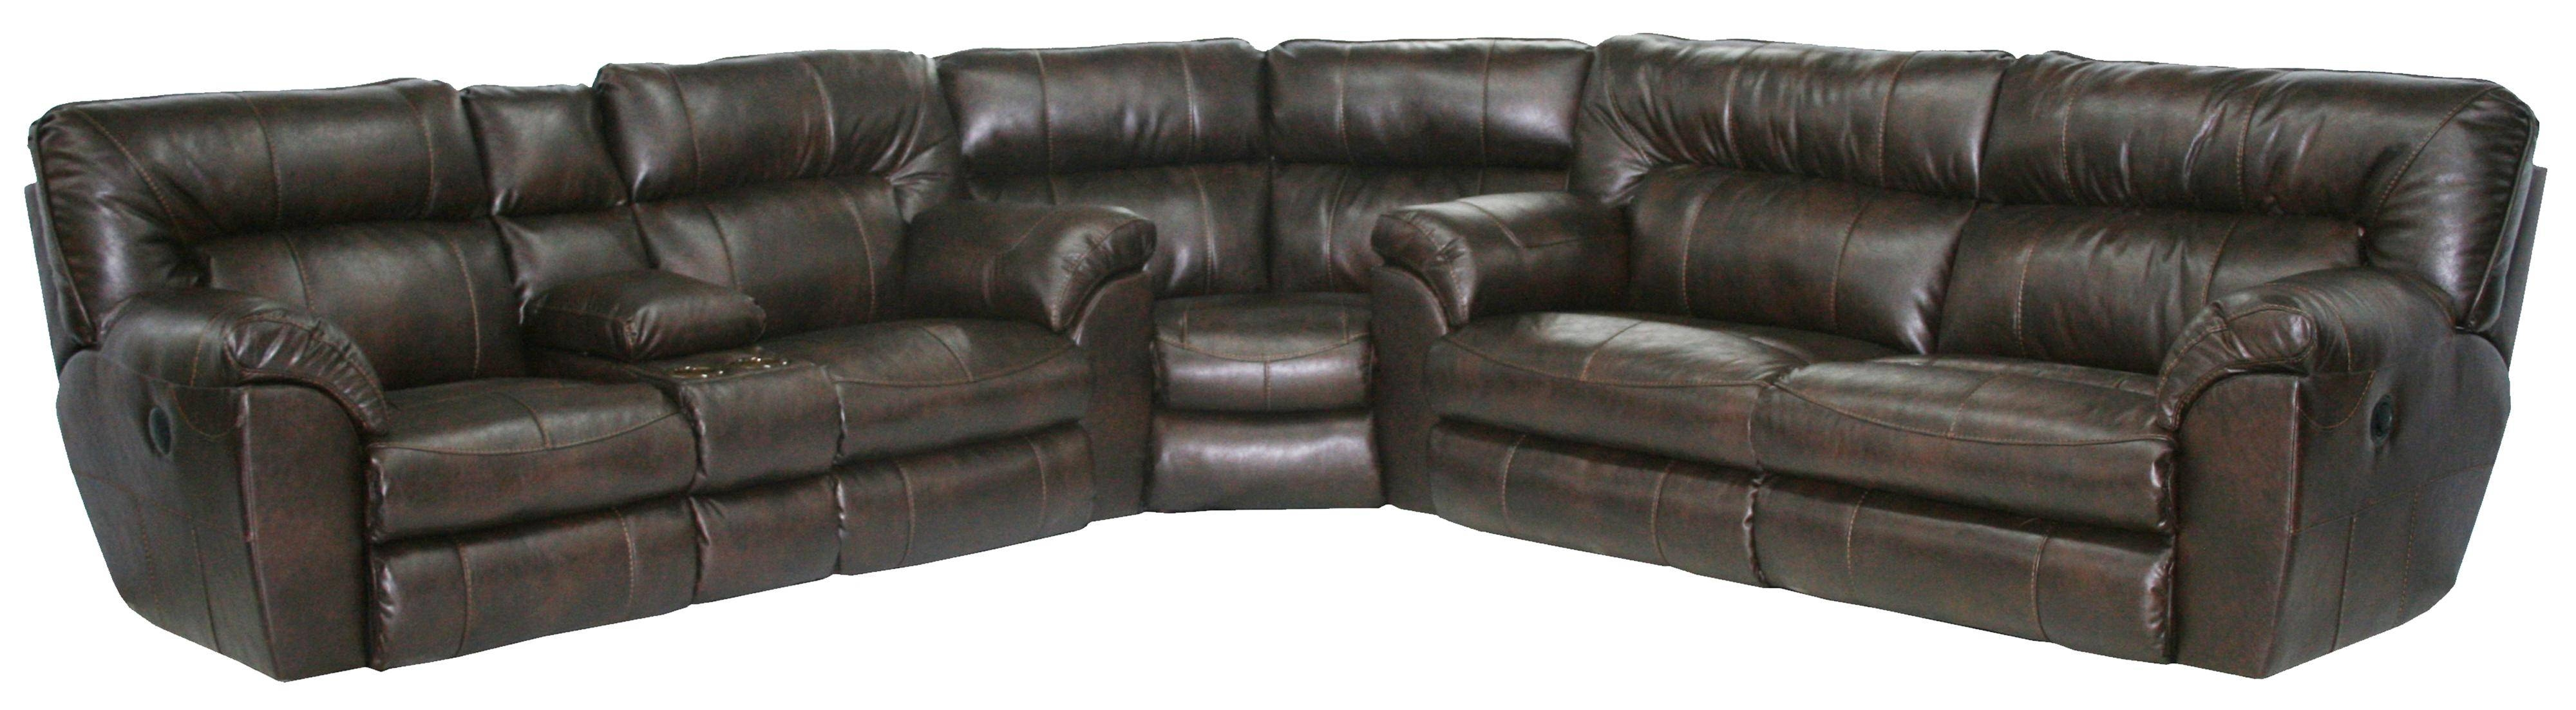 Nina Leather Sectional Living Room Furniture Collection Power Reclining Jed